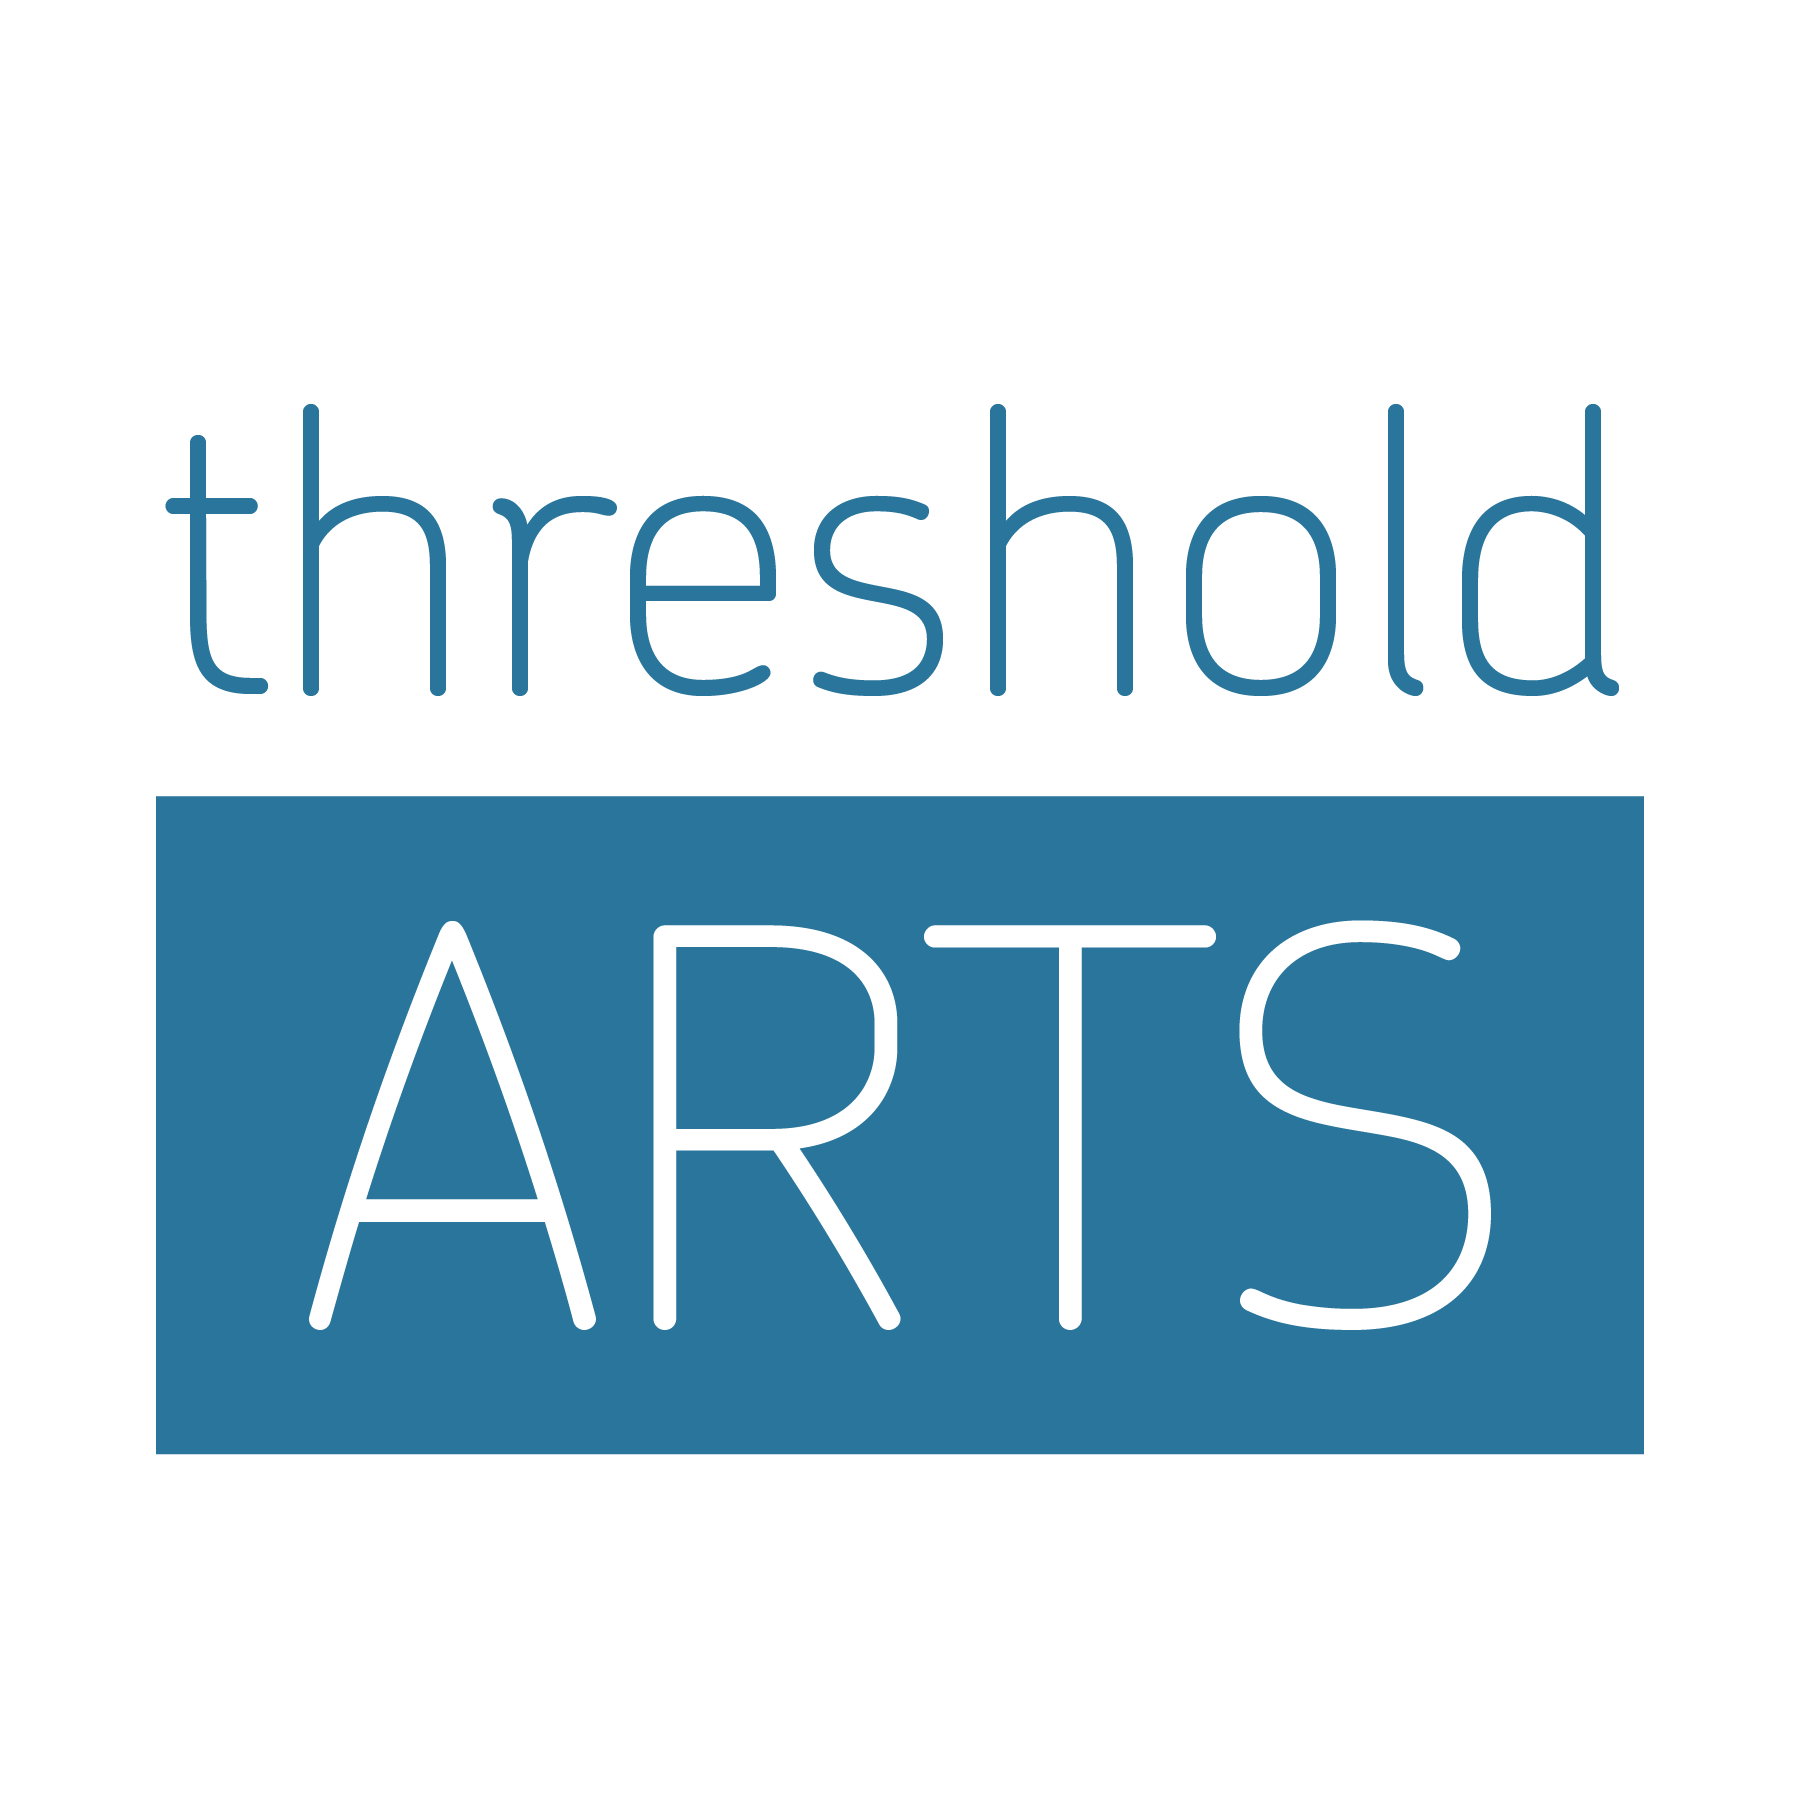 Threshold Arts - Director's office hours:9:30 am – 4:30 pm | Monday - Fridayand by appointment.Studio Artist hours vary.